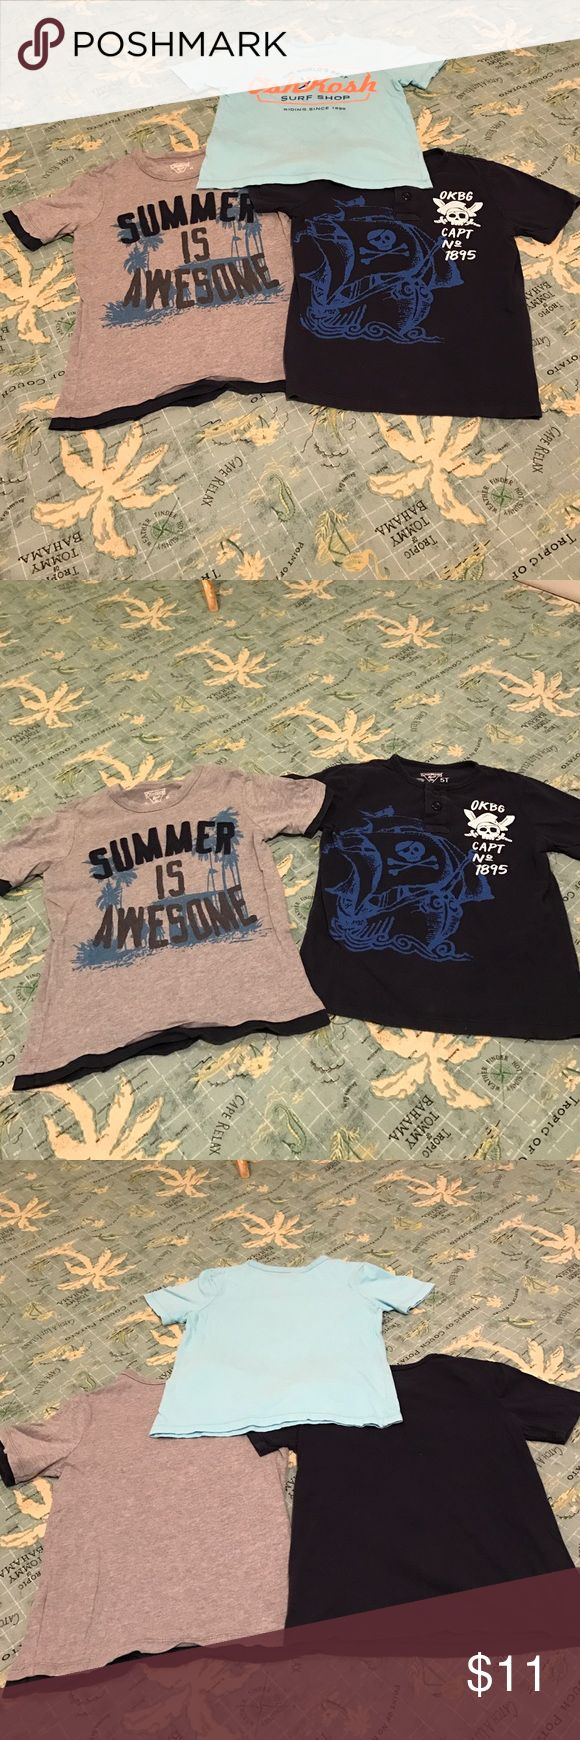 Osh Kosh Set Of 3 Shirts Cute Set Of 3 Boy's Short Sleeve Crew Neck Shirts By Osh Kosh. The navy blue with pirates & the turquoise like color that says surf shop are size: 5T. The gray & navy blue that says summer is awesome with palm trees is a size:5. All EUC. All 100% cotton. Machine wash. Tumble dry. NO TRADES. Osh Kosh Shirts & Tops Tees - Short Sleeve